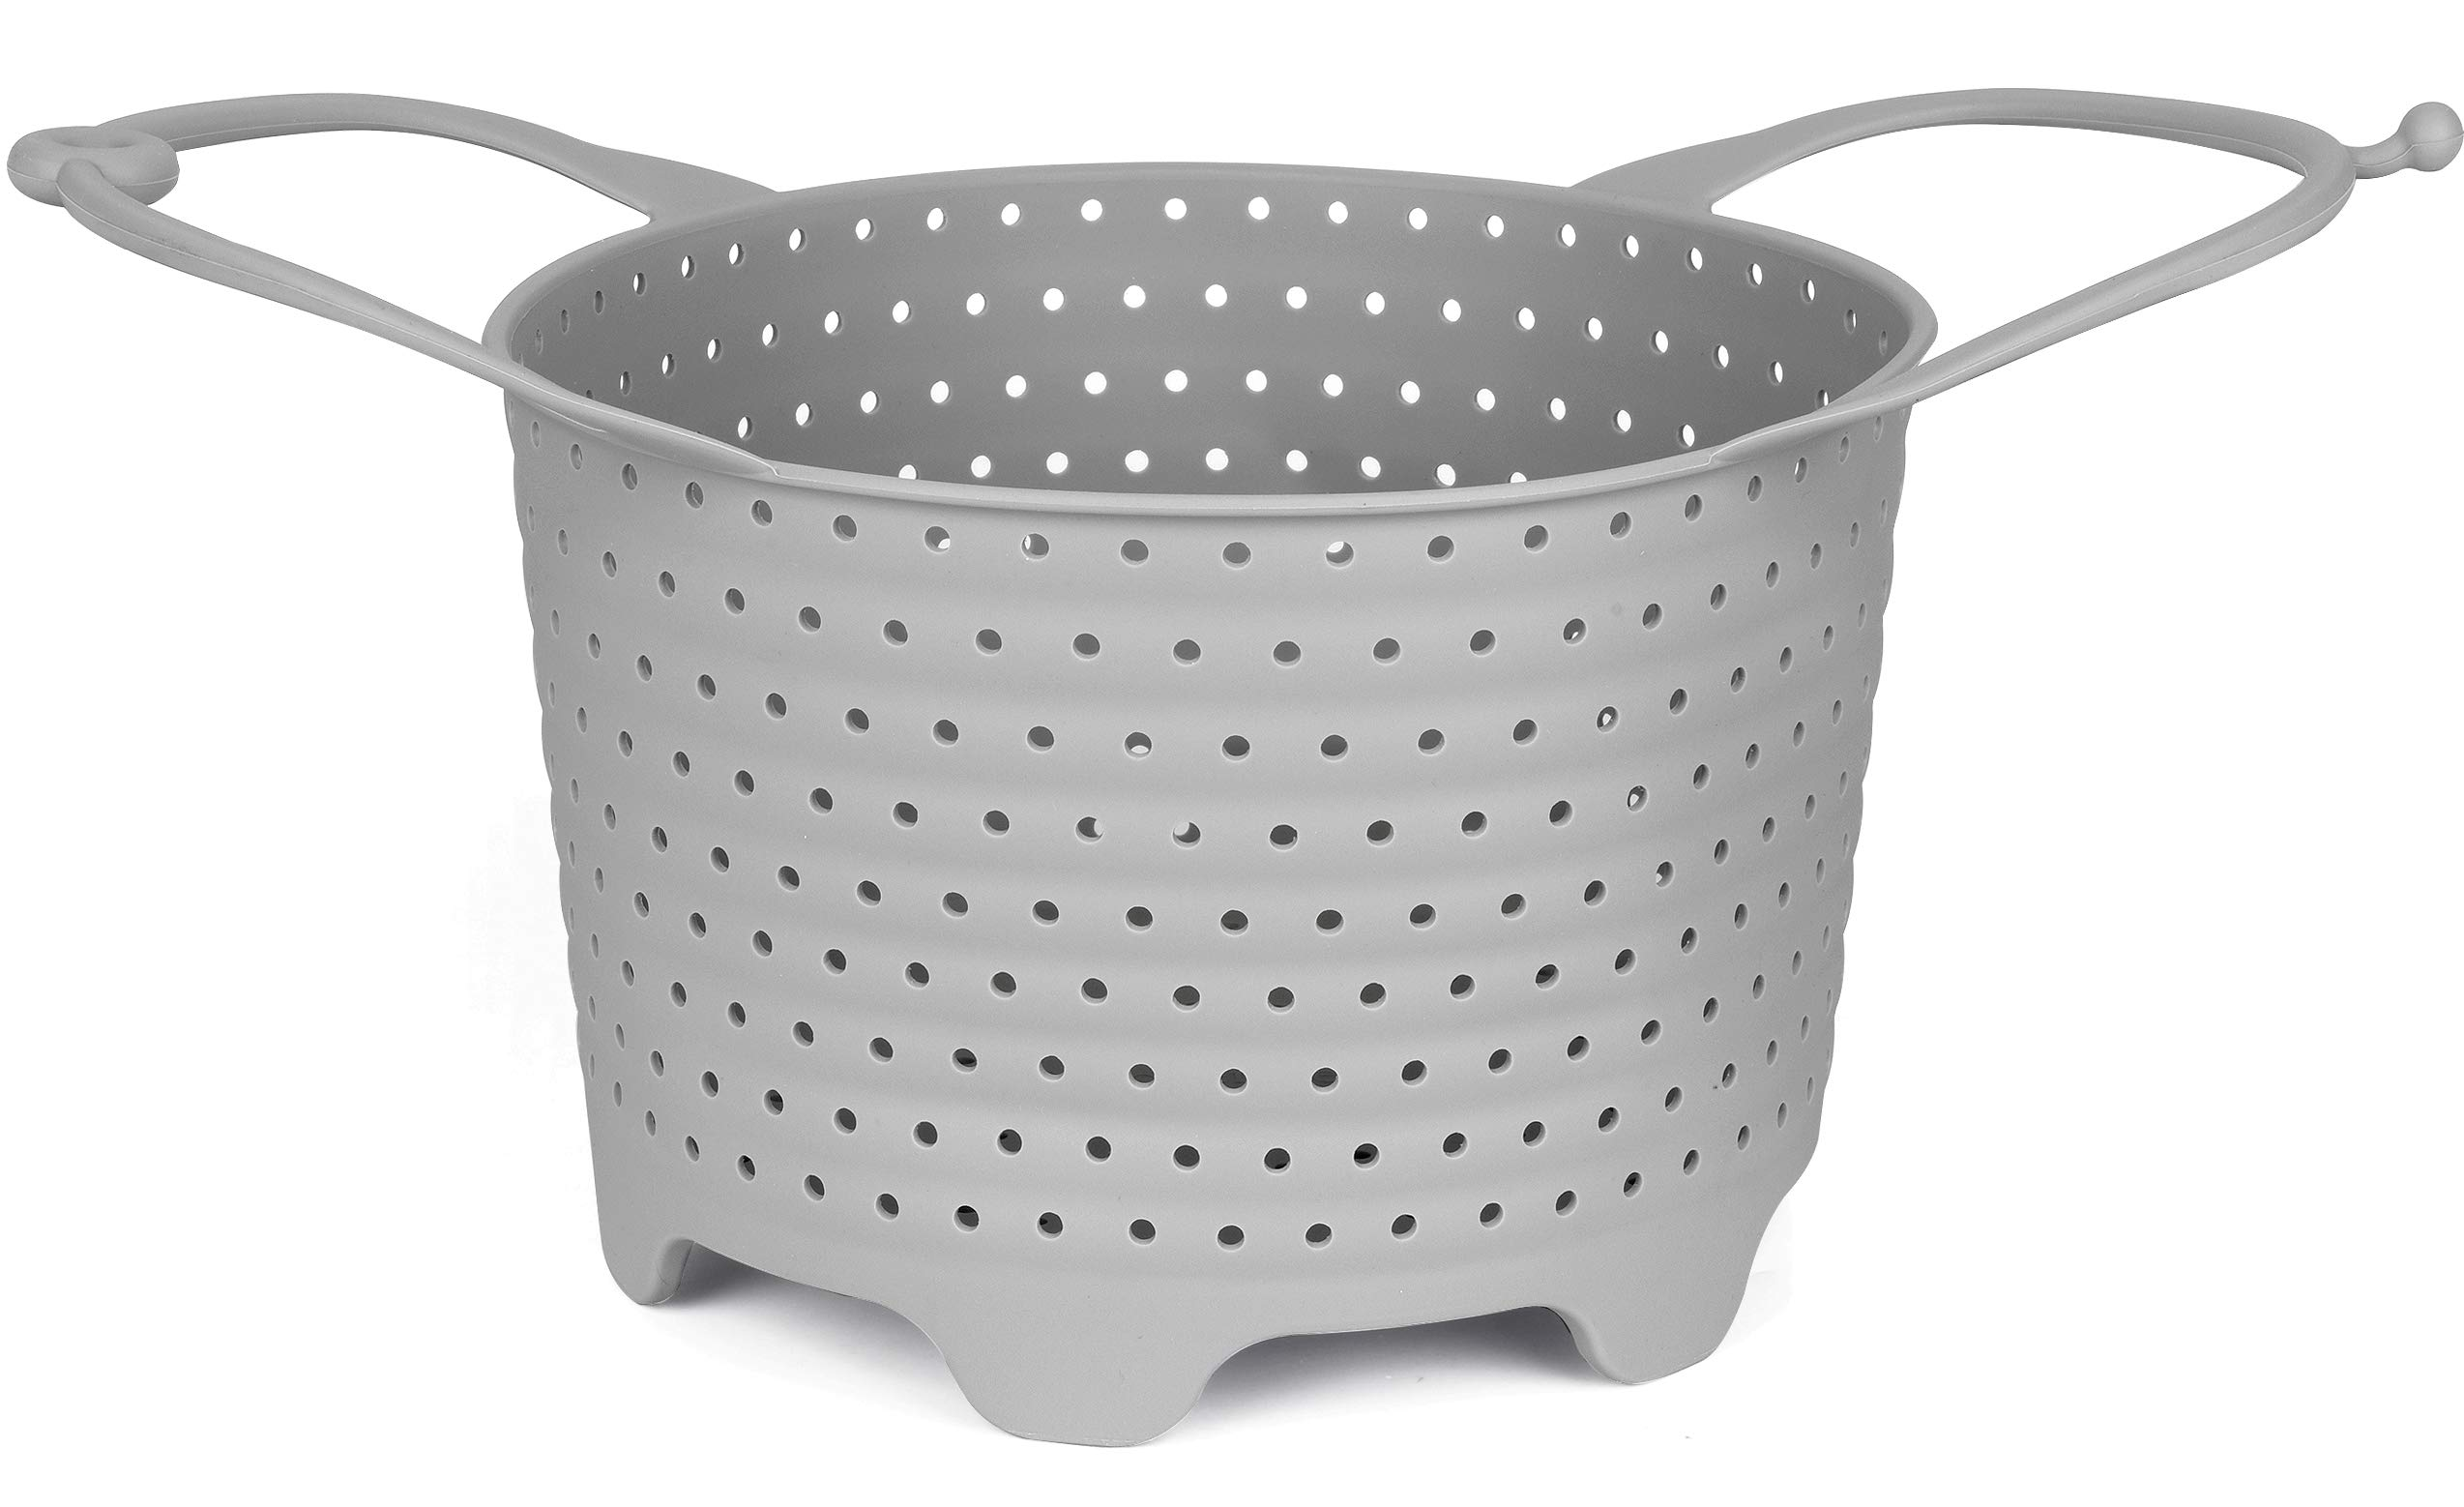 Instant Pot Silicone Steamer Basket I Non-Scratch IP Insert Fits in InstaPot Pressure Cookers and Cooking Pots I Vegetable Steamer or Egg Basket IP Accessory for Instant Pot 6 Quart